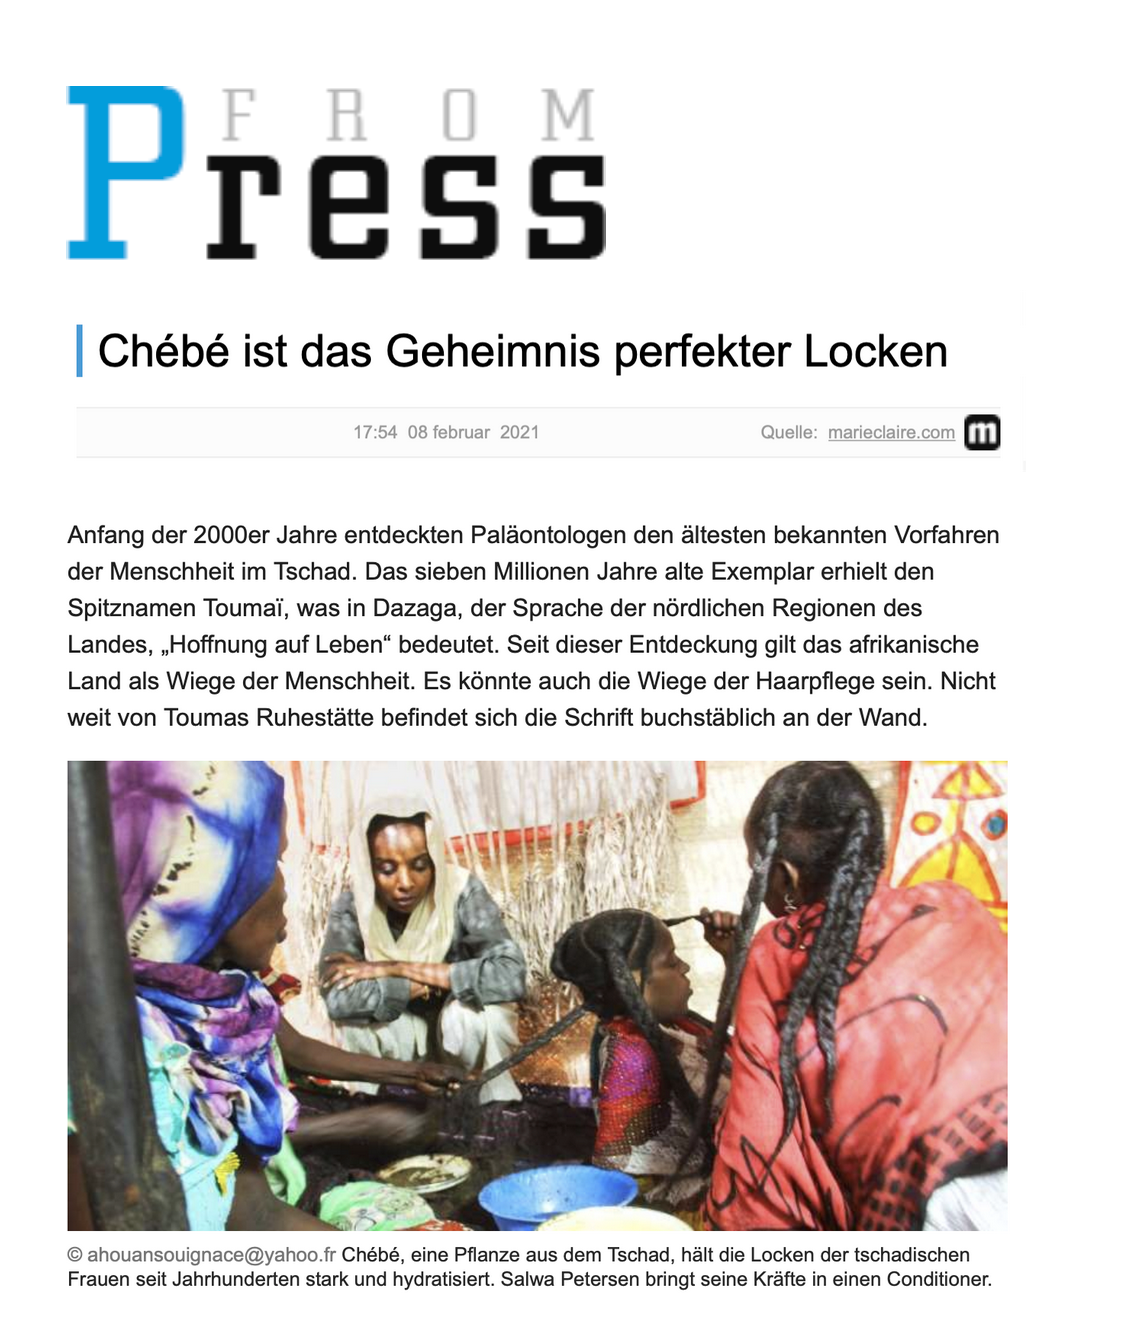 Germany - From Press 08.02.2021